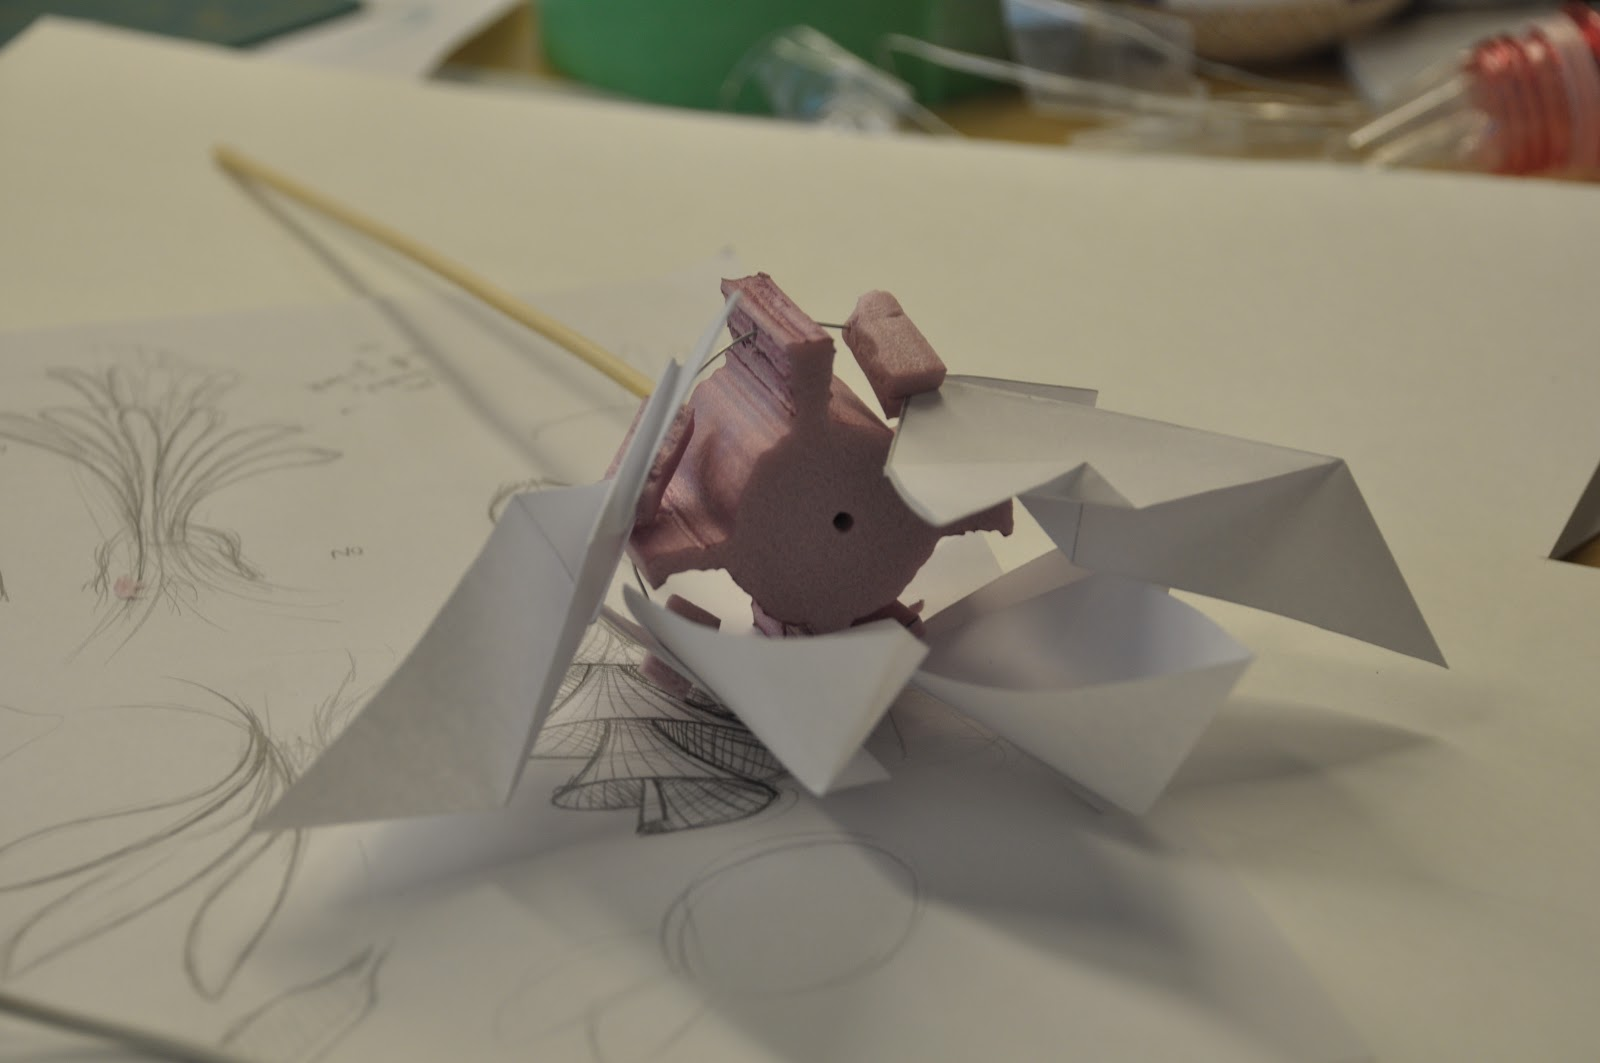 To Achieve Lift Based On Centrifugal Force, We Experimented With  Cardboard/paper Blades Attached To A Styrofoam Hinges.